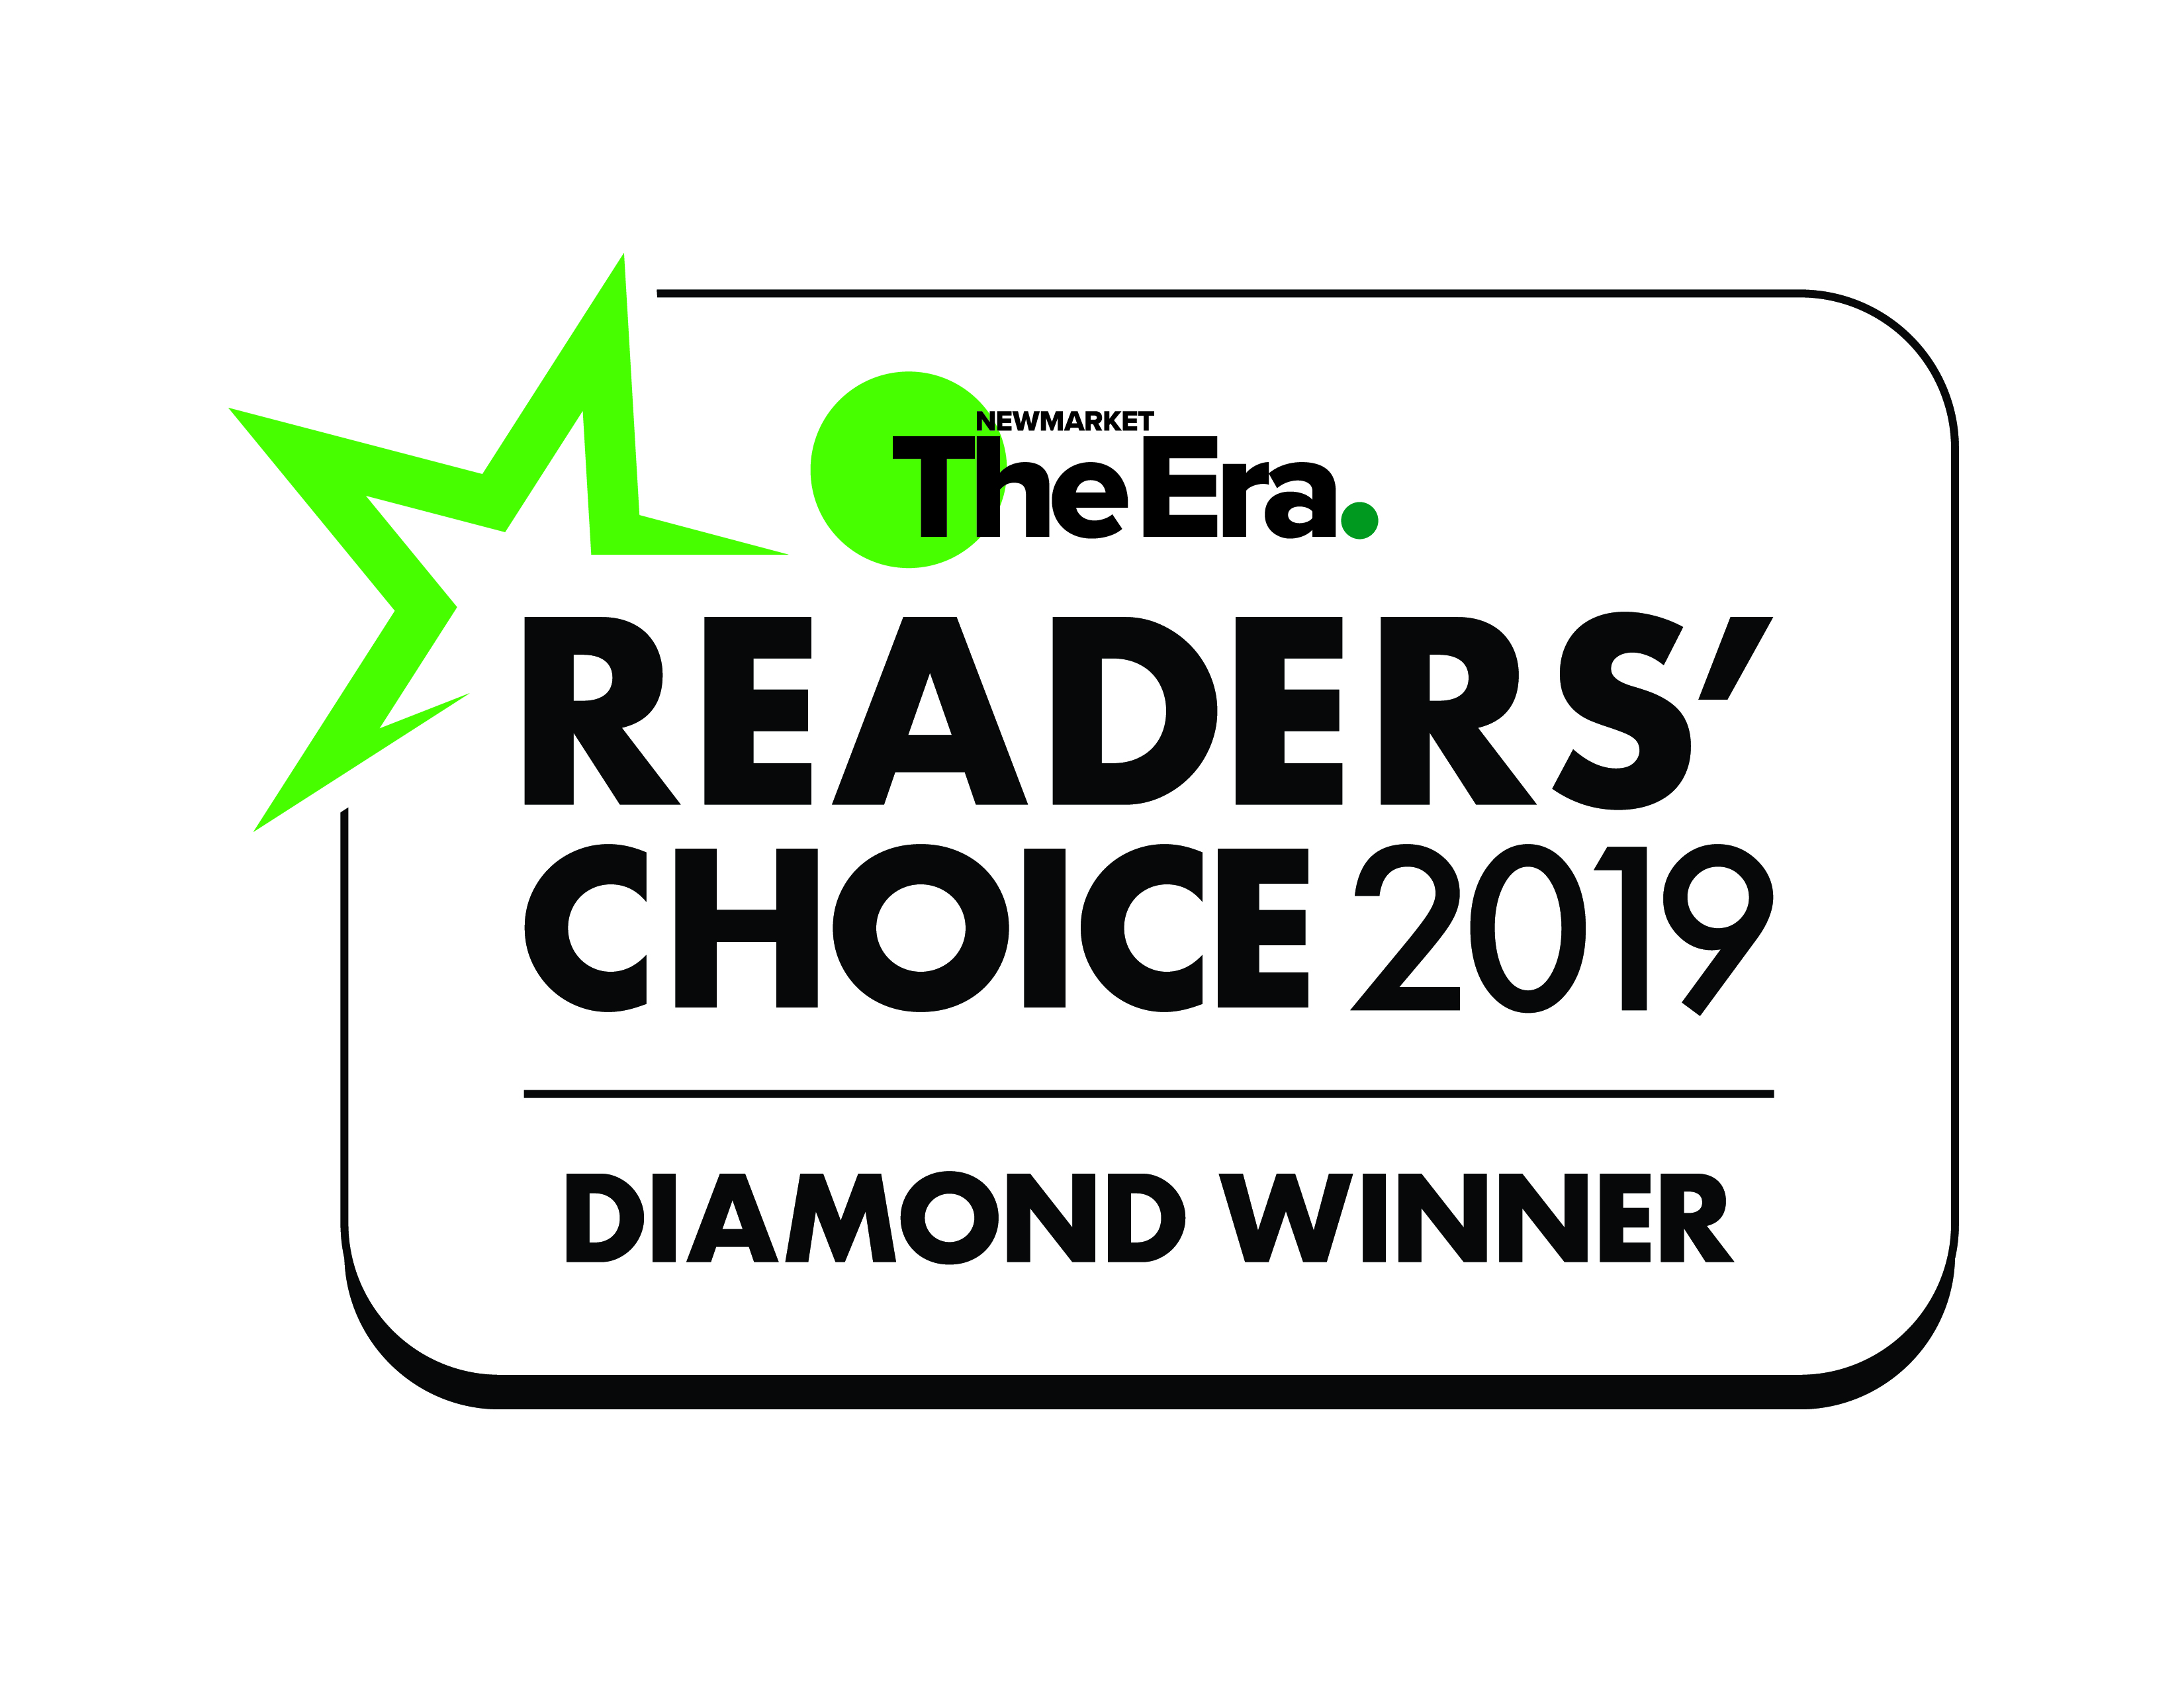 Reader's Choice Award 2019's Award Image